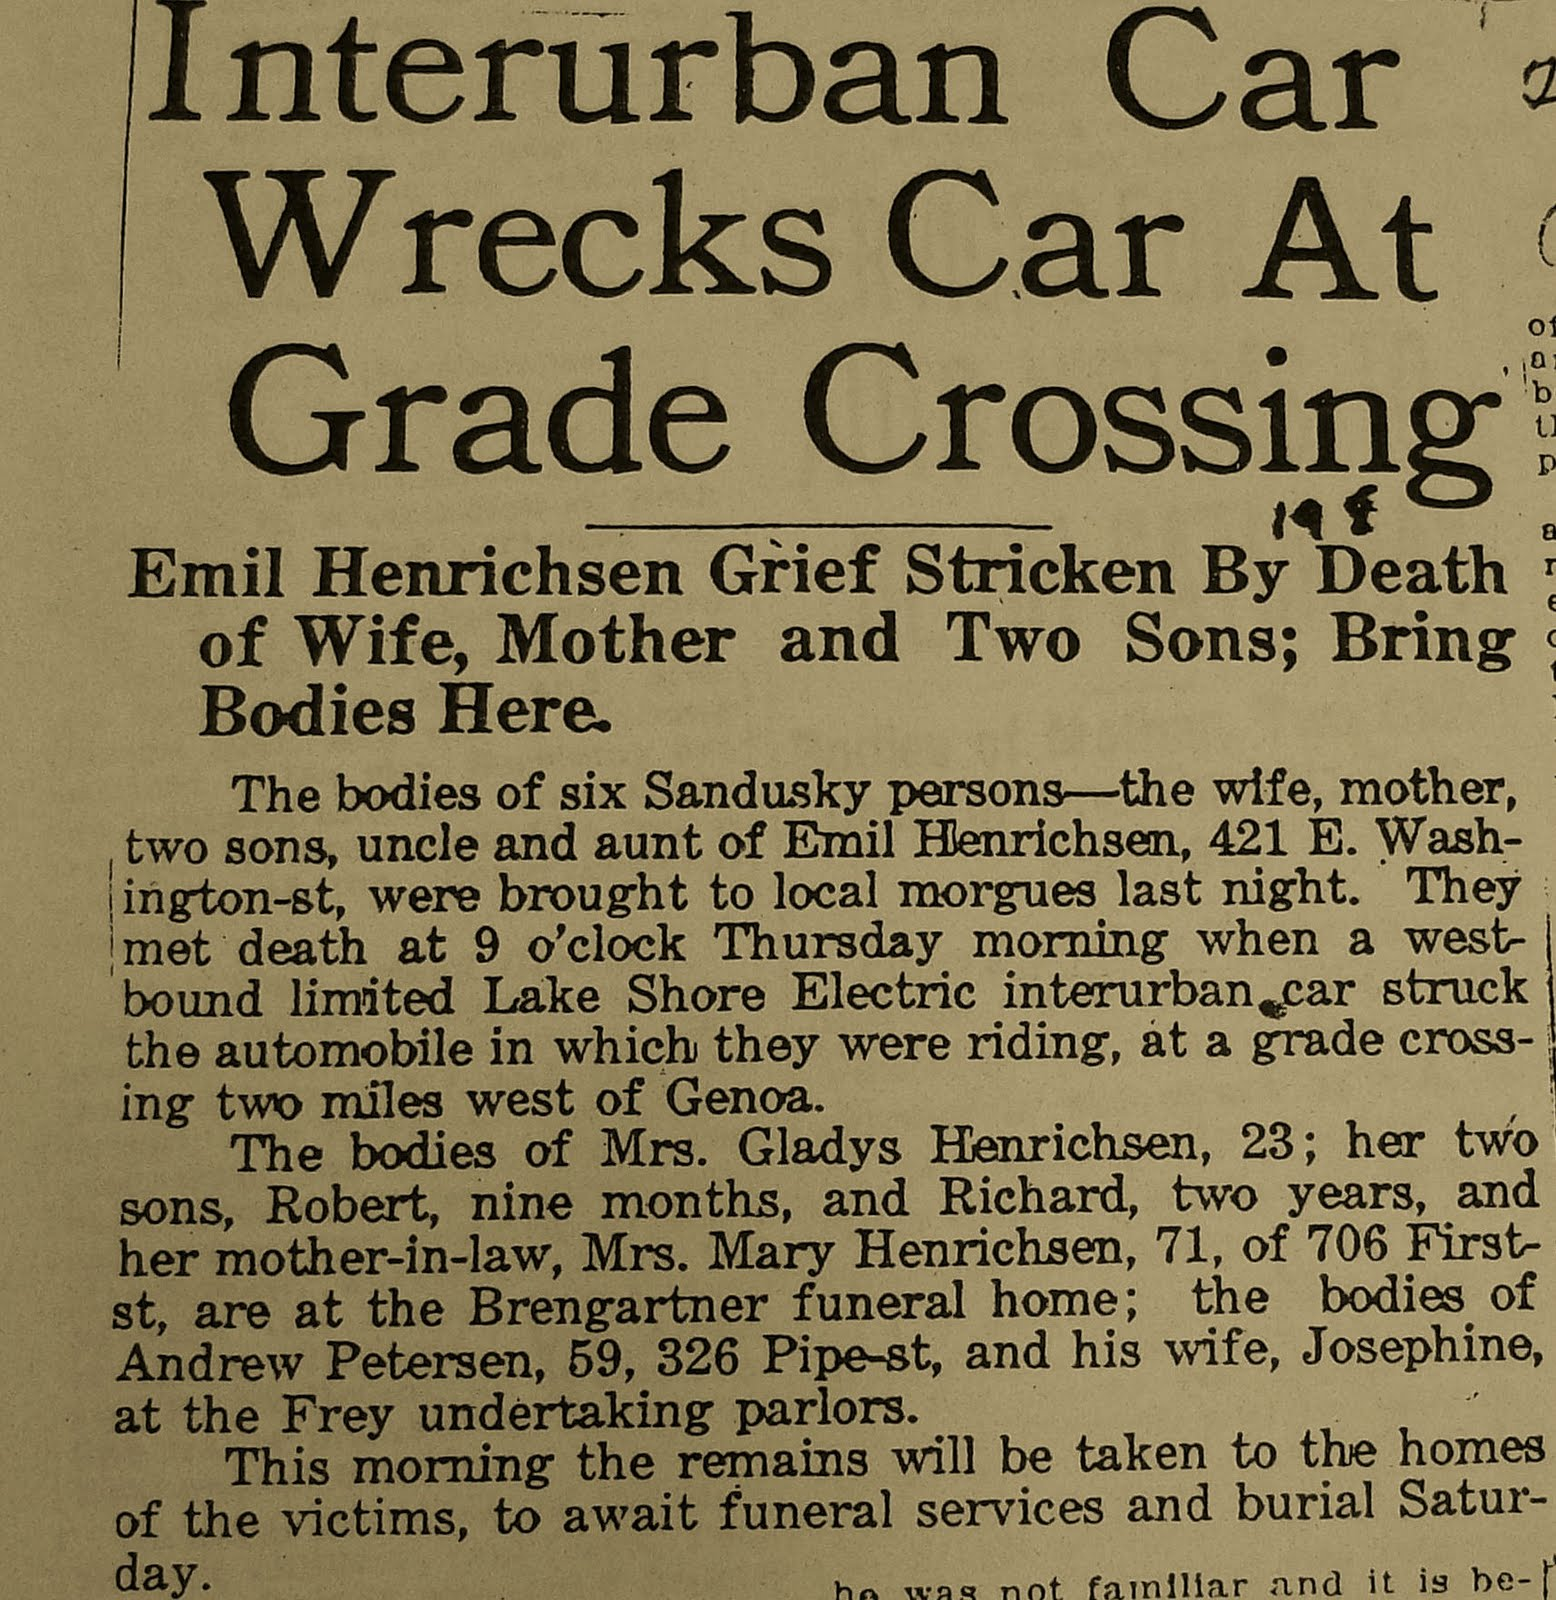 A Tragic Accident Took The Lives Of Six Sandusky Residents On Morning June 19 1924 In Genoa Ohio Emil Henrichsens Mother Wife And Two Young